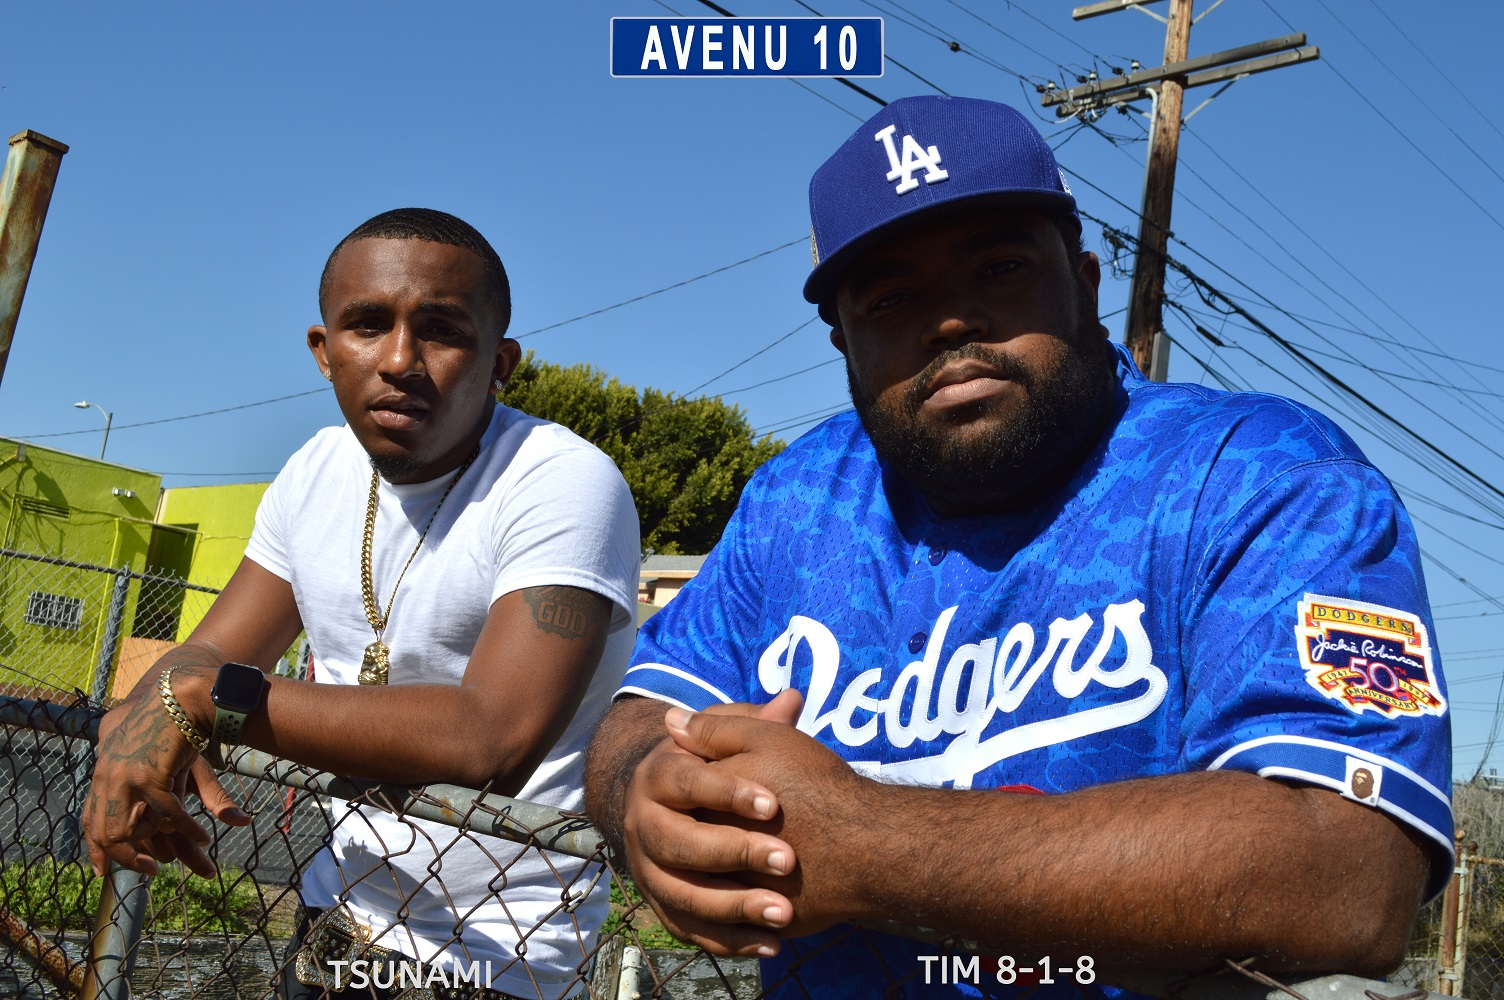 """Rising Los Angeles Hip Hop Trio, Avenu 10, Release Debut Video """"Money Counter"""" From Upcoming EP"""